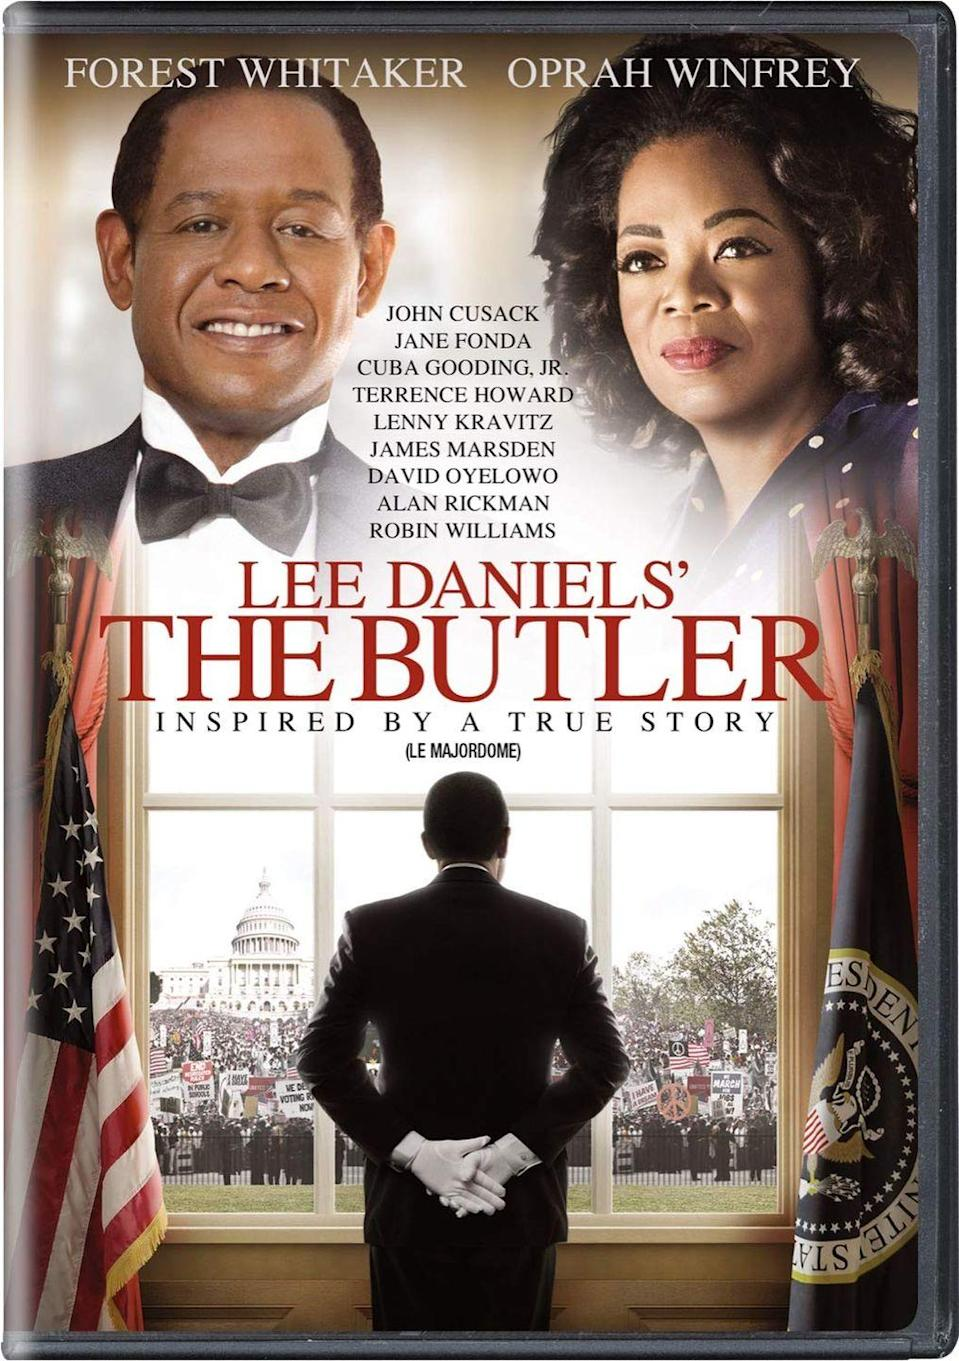 """<p><a class=""""link rapid-noclick-resp"""" href=""""https://www.amazon.com/Lee-Daniels-Butler-Forest-Whitaker/dp/B00H6PG2NG?tag=syn-yahoo-20&ascsubtag=%5Bartid%7C10070.g.34963316%5Bsrc%7Cyahoo-us"""" rel=""""nofollow noopener"""" target=""""_blank"""" data-ylk=""""slk:STREAM NOW"""">STREAM NOW</a></p><p>Inspired by the 2008 <em>Washington Post</em> article """"A Butler Well Served by This Election,"""" <em>The Butler </em>is loosely based on the life of Eugene Allen, a Black butler who spent 34 years working in the White House and witnessed several notable political and social events before retiring in 1986. </p>"""